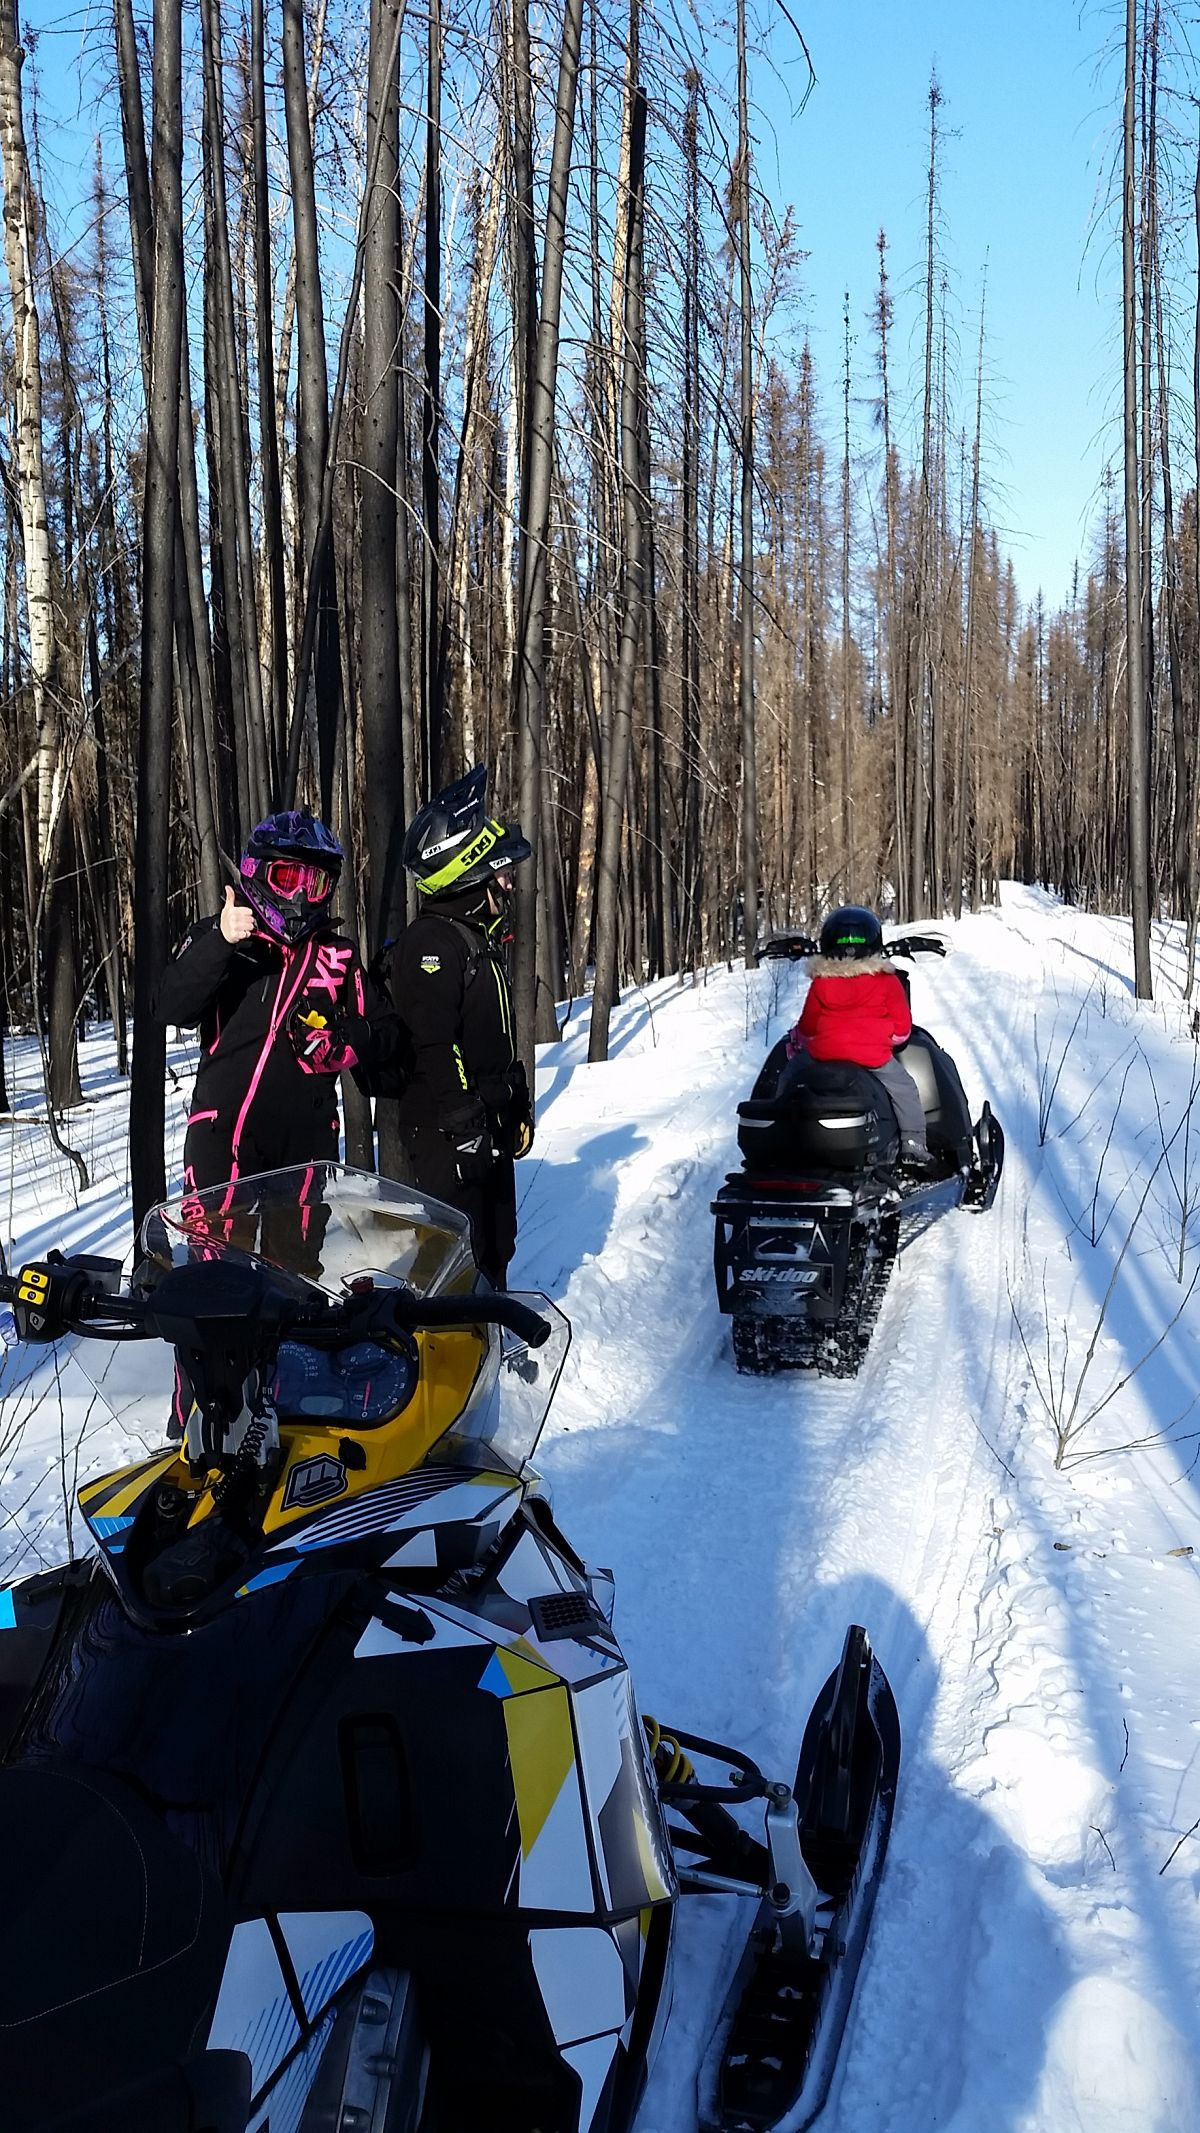 Sledding through the burnt boreal forest near Weyakwin Lake